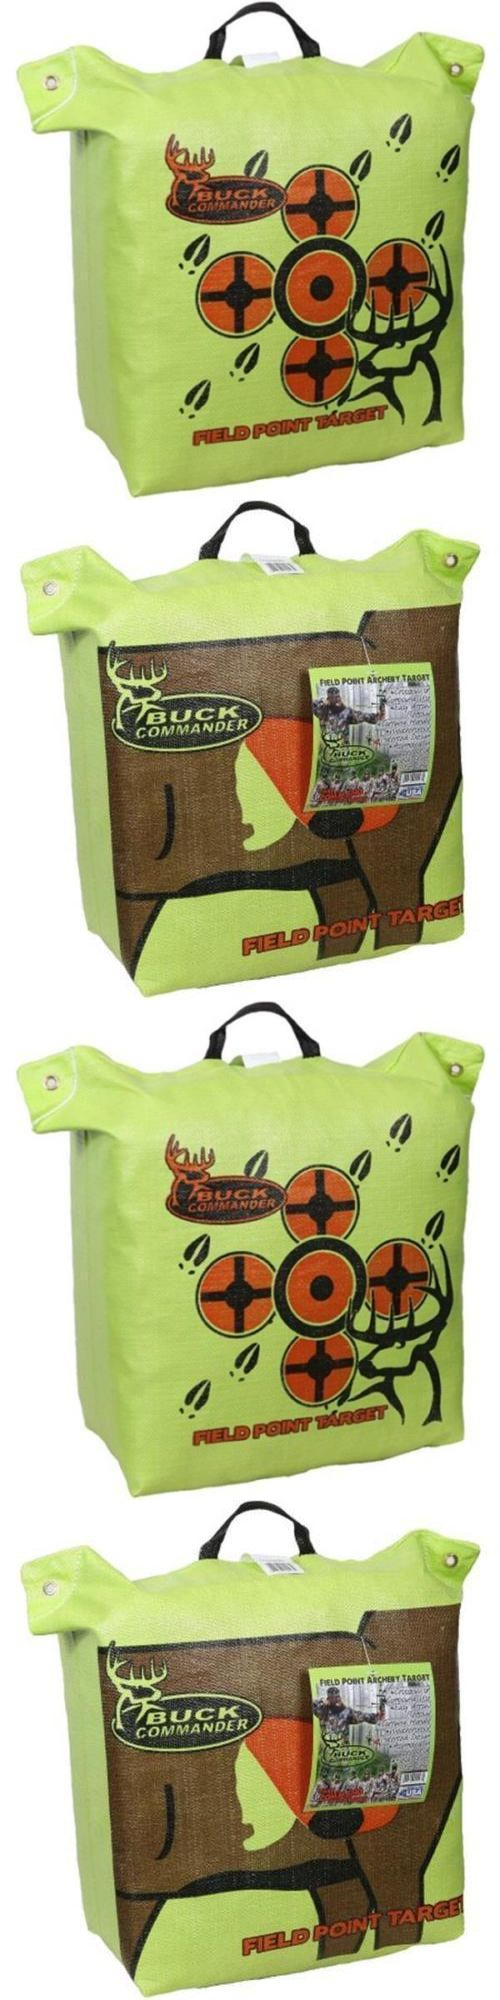 Targets 52480: Archery Target Bag Buck Commander Compound Crossbow Field Point Targets Bow Deer -> BUY IT NOW ONLY: $32.59 on eBay!